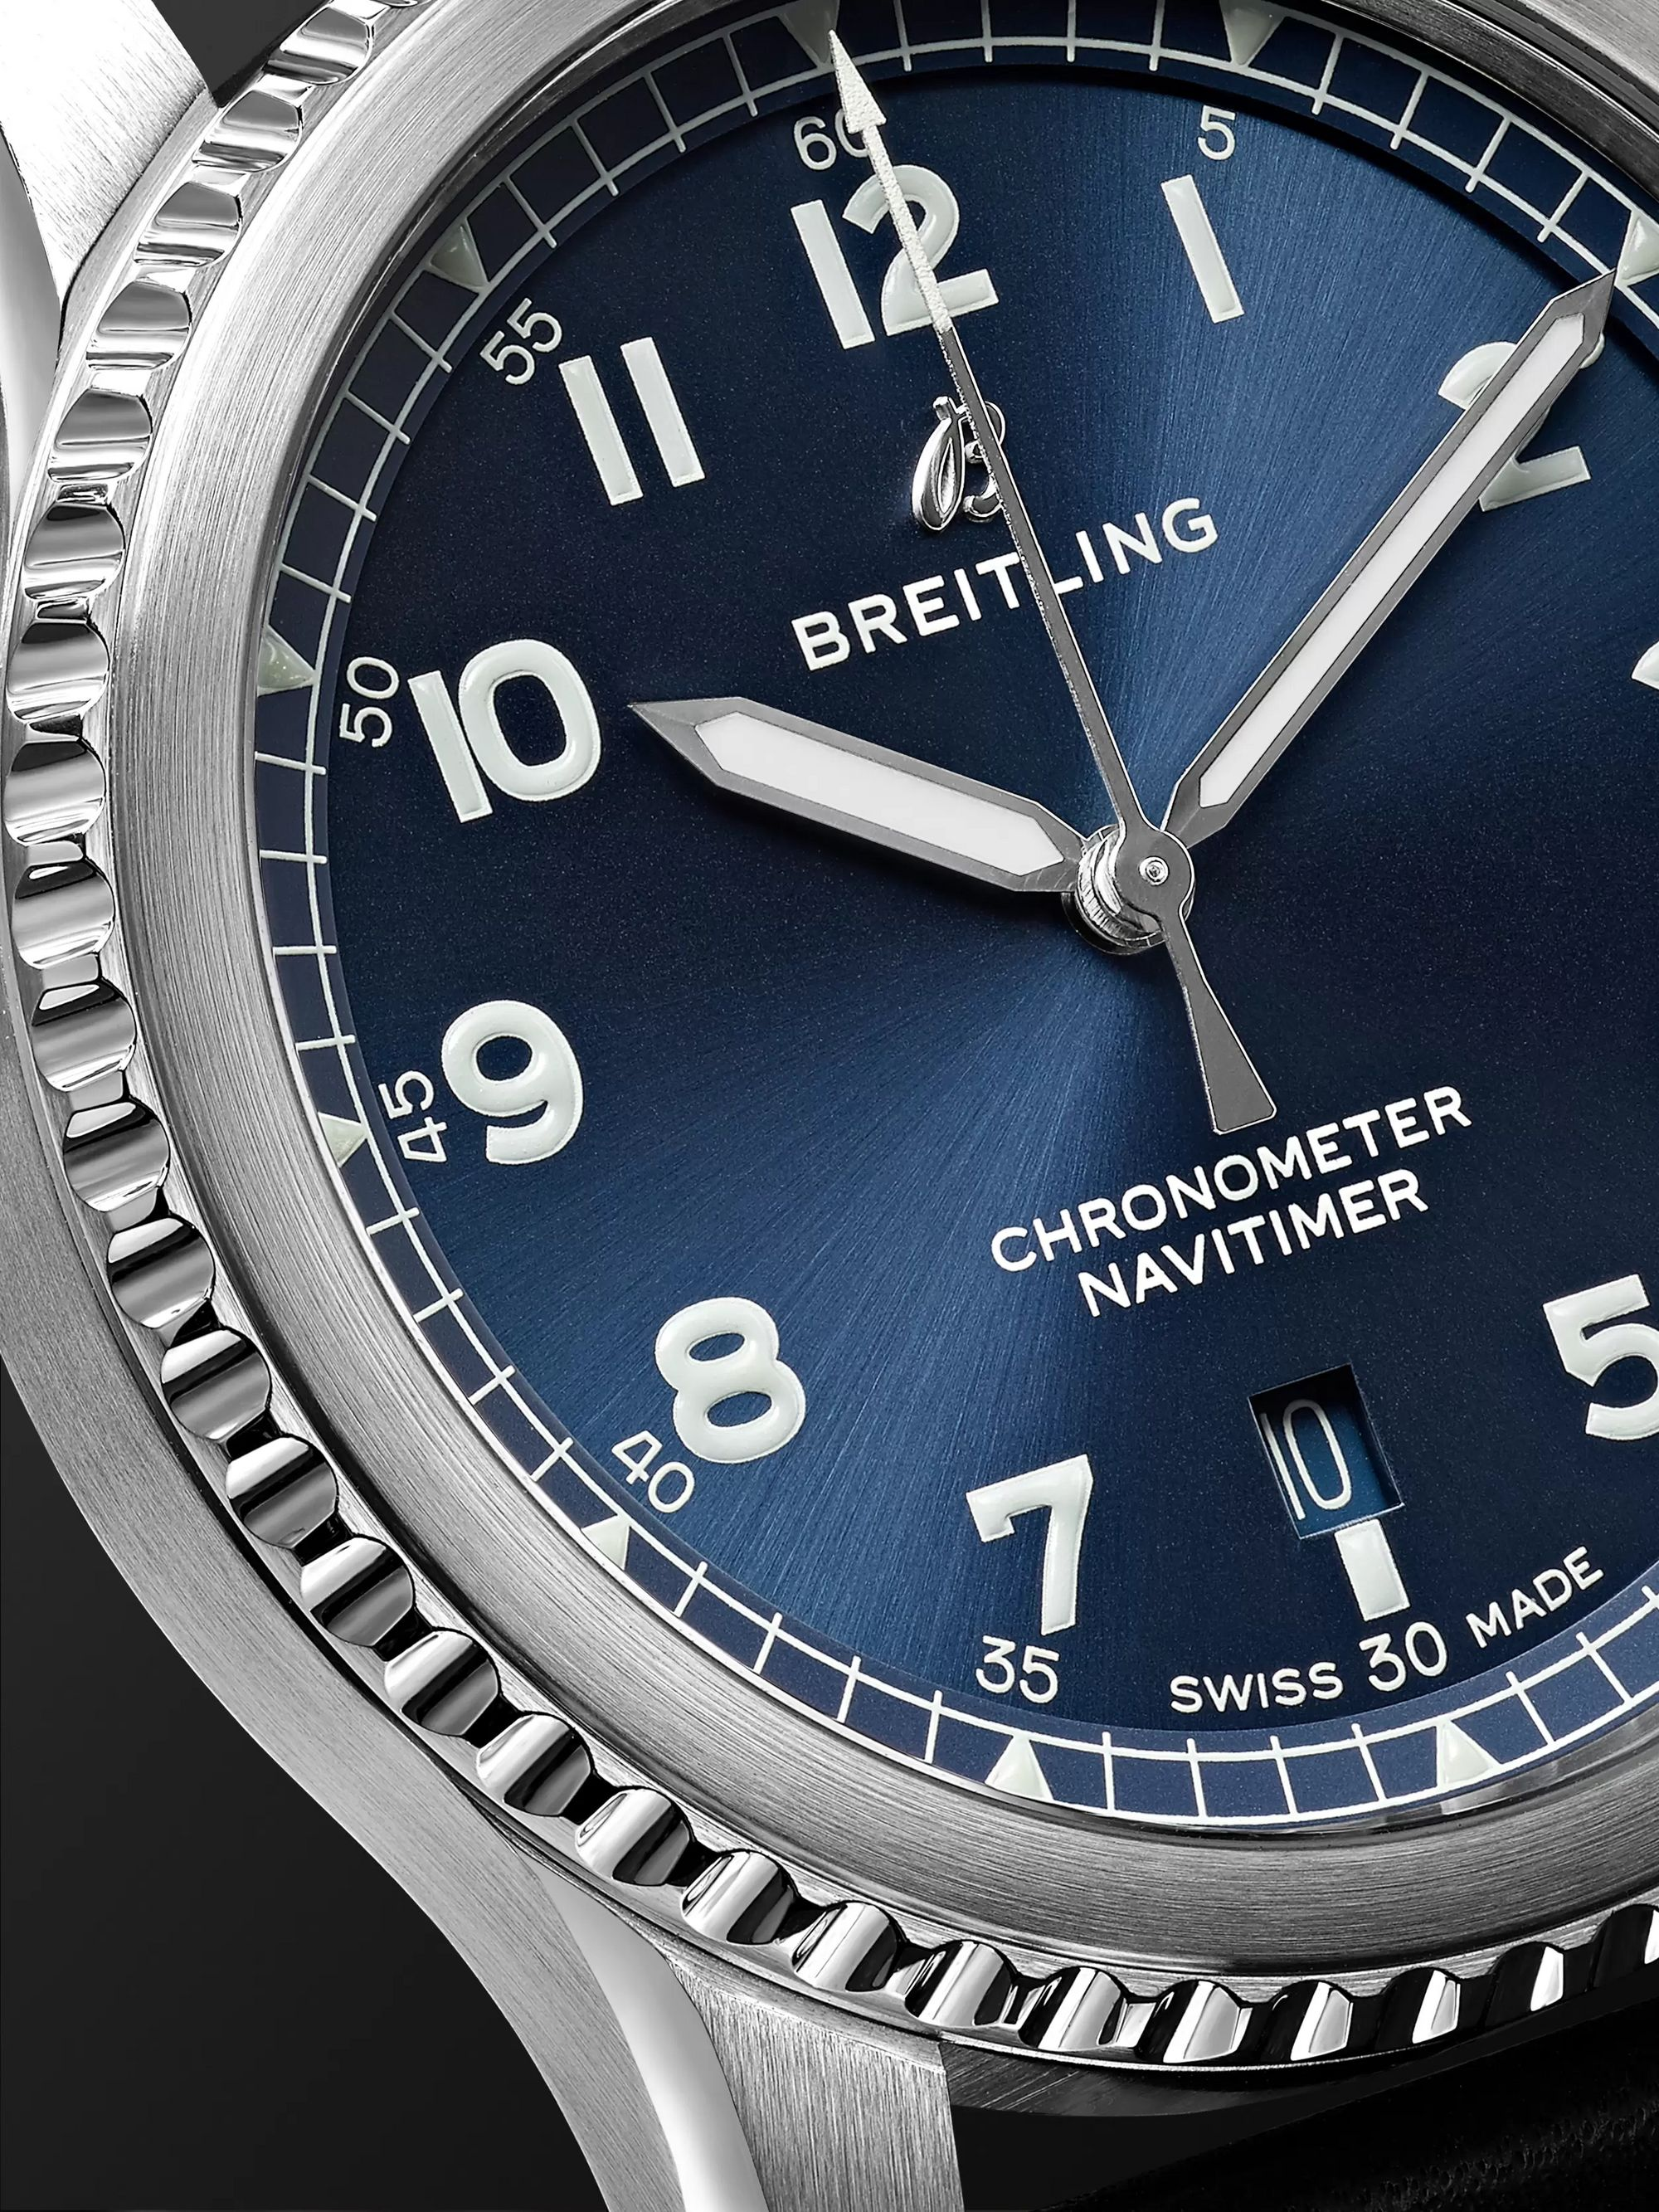 Breitling Navitimer 8 Automatic Chronometer 41mm Steel and Leather Watch, Ref. No. A17314101C1X2